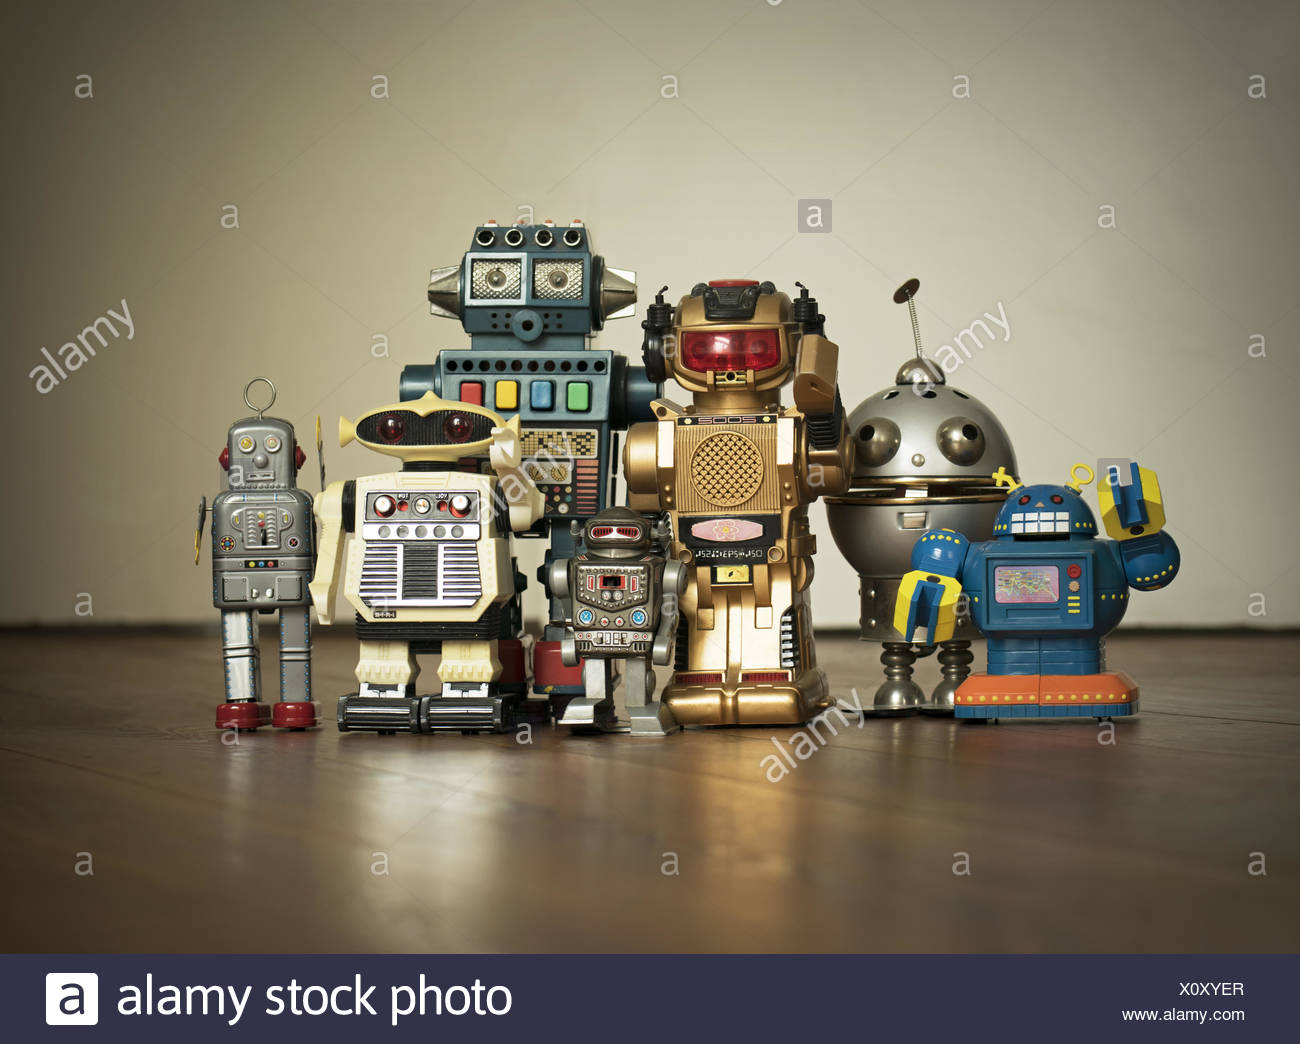 robot family pic - Stock Image